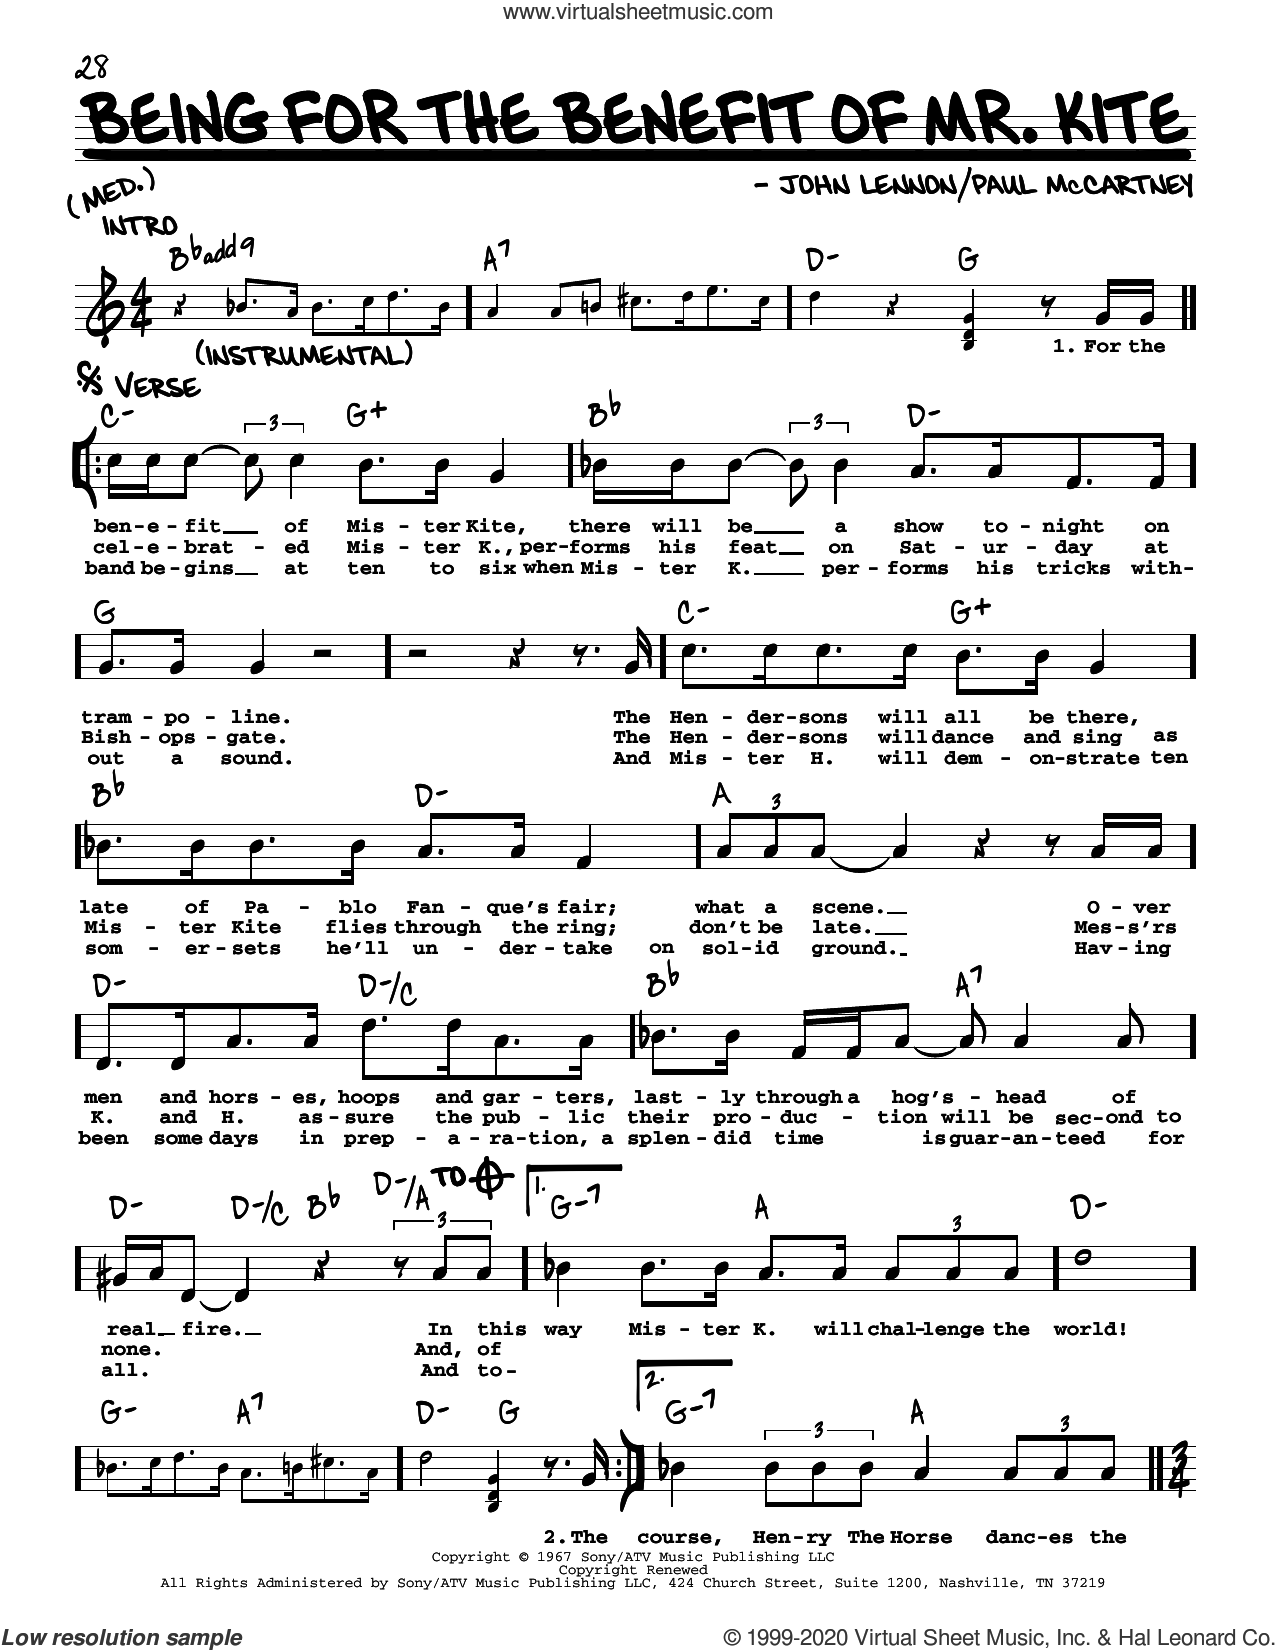 Being For The Benefit Of Mr. Kite [Jazz version] sheet music for voice and other instruments (real book with lyrics) by The Beatles, John Lennon and Paul McCartney, intermediate skill level